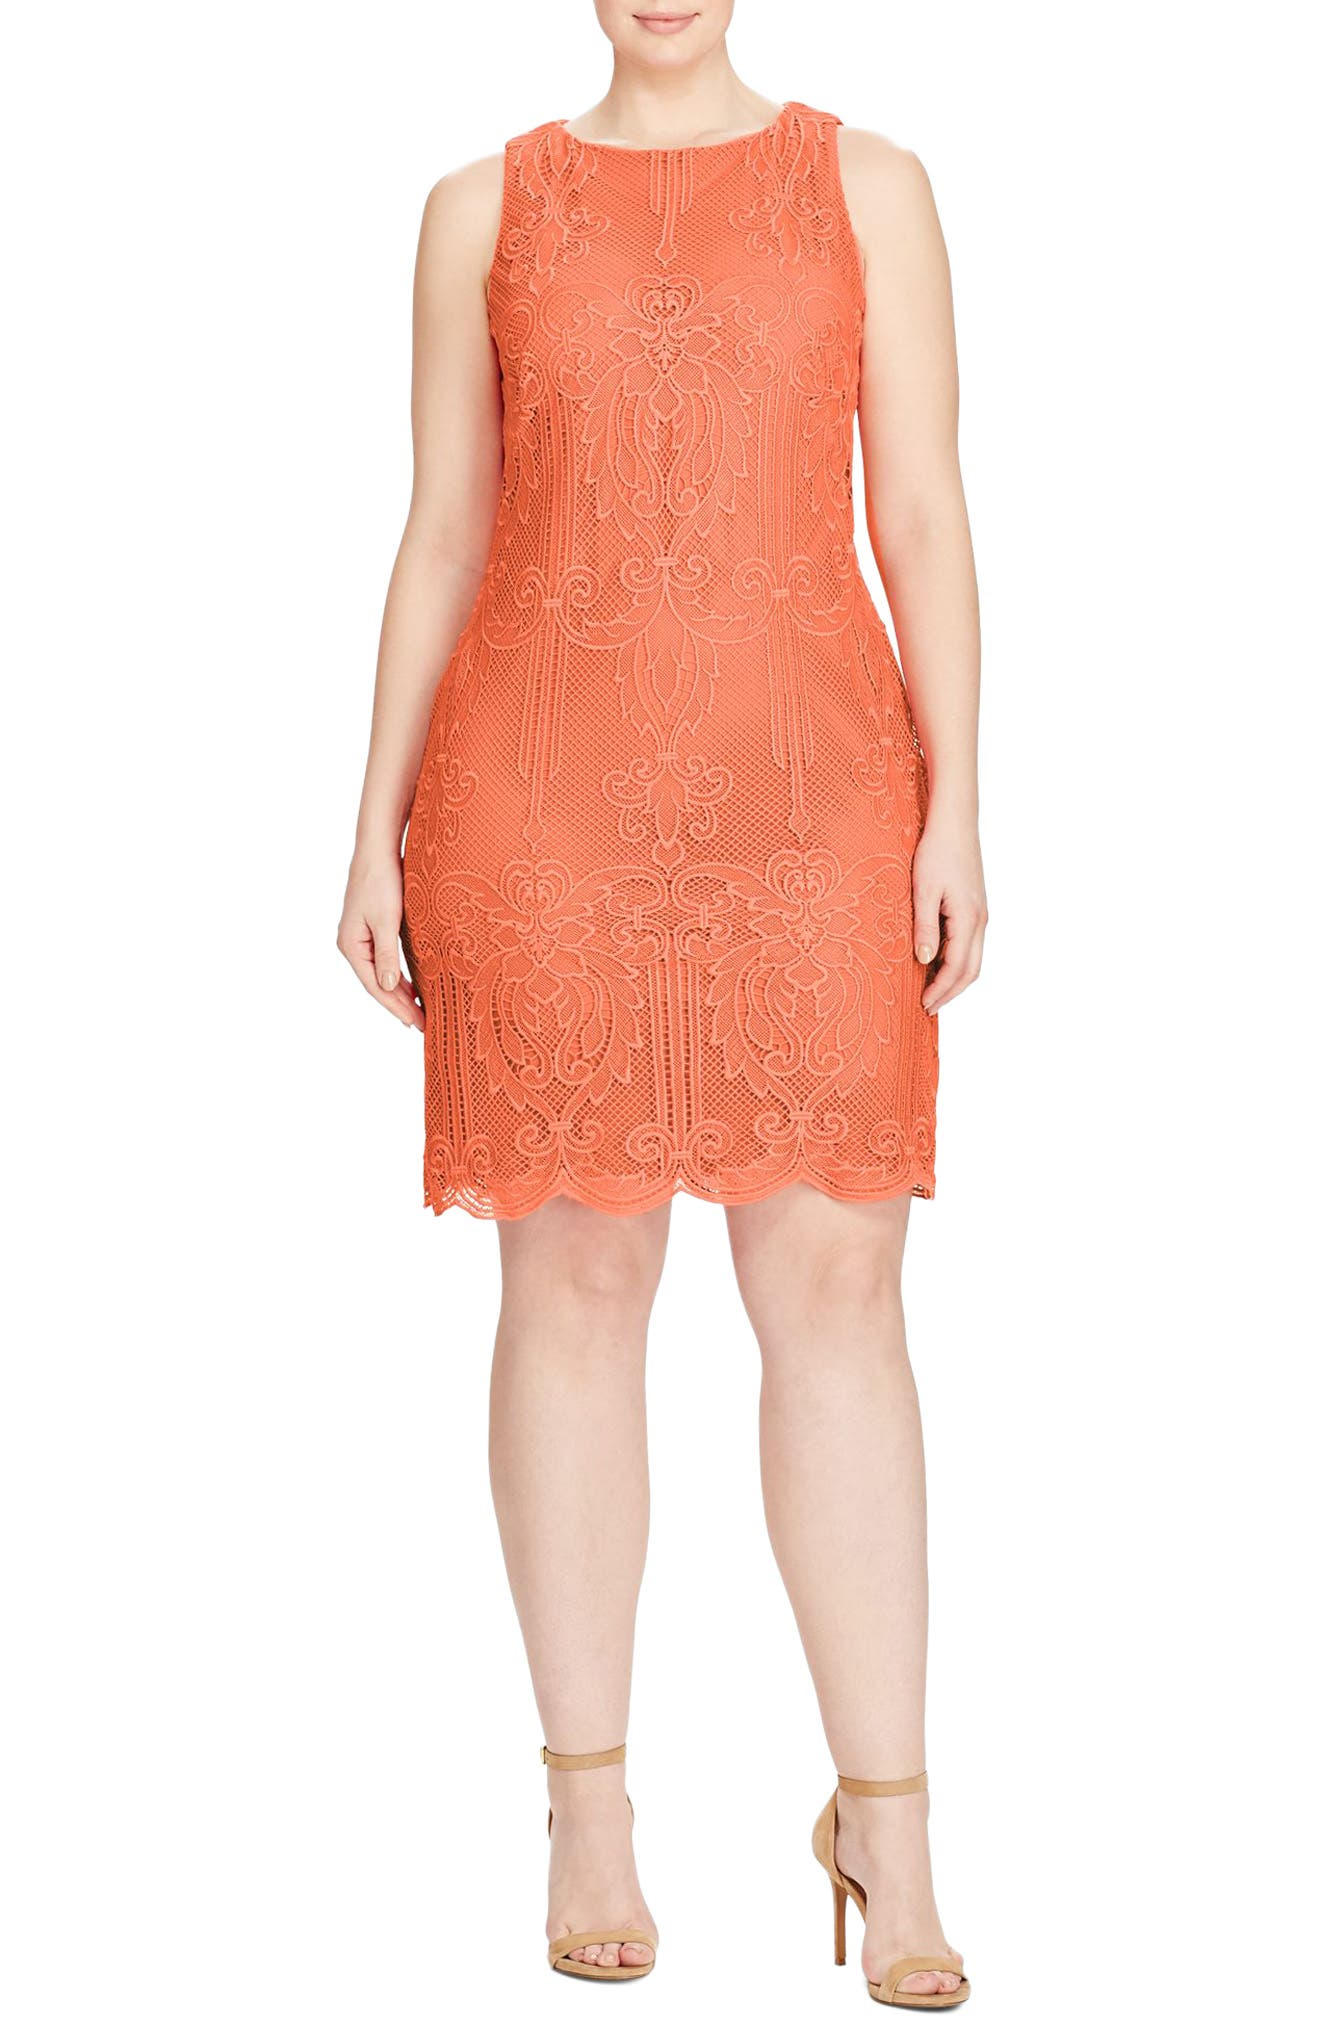 Lauren Ralph Lauren Lace Sheath Dress (Plus Size)